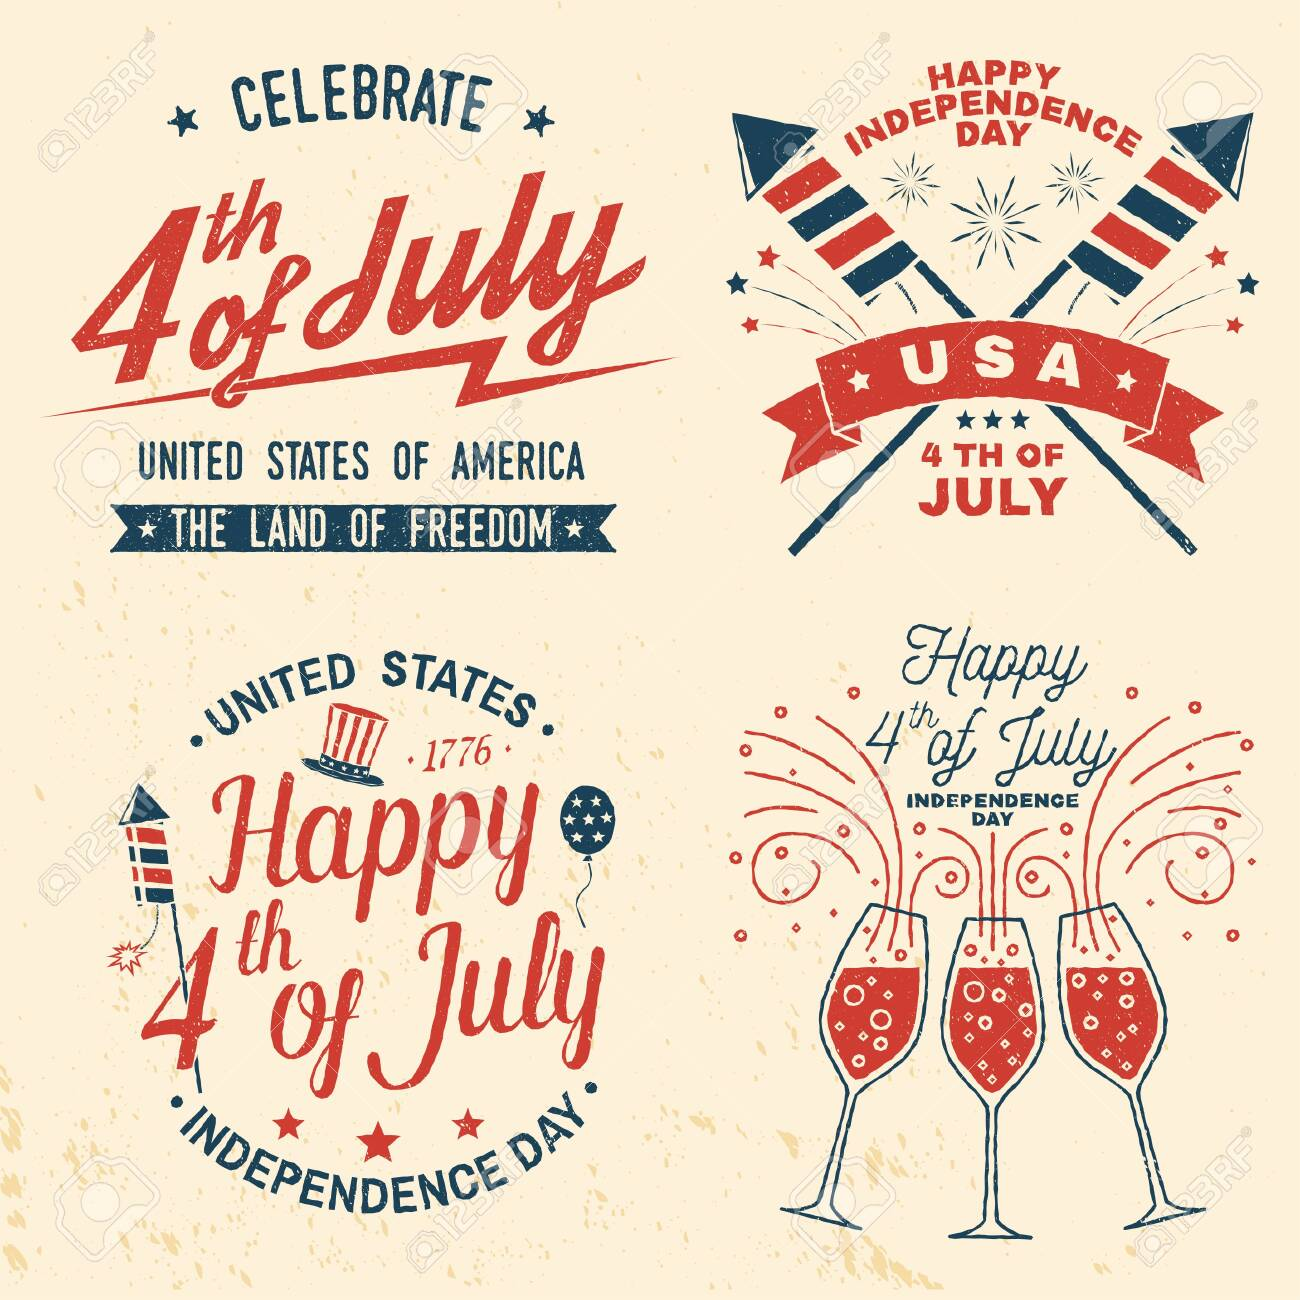 Set of Vintage 4th of july design. Fourth of July felicitation classic postcard. Independence day greeting card. Patriotic banner for website template. Vector illustration. - 127113115